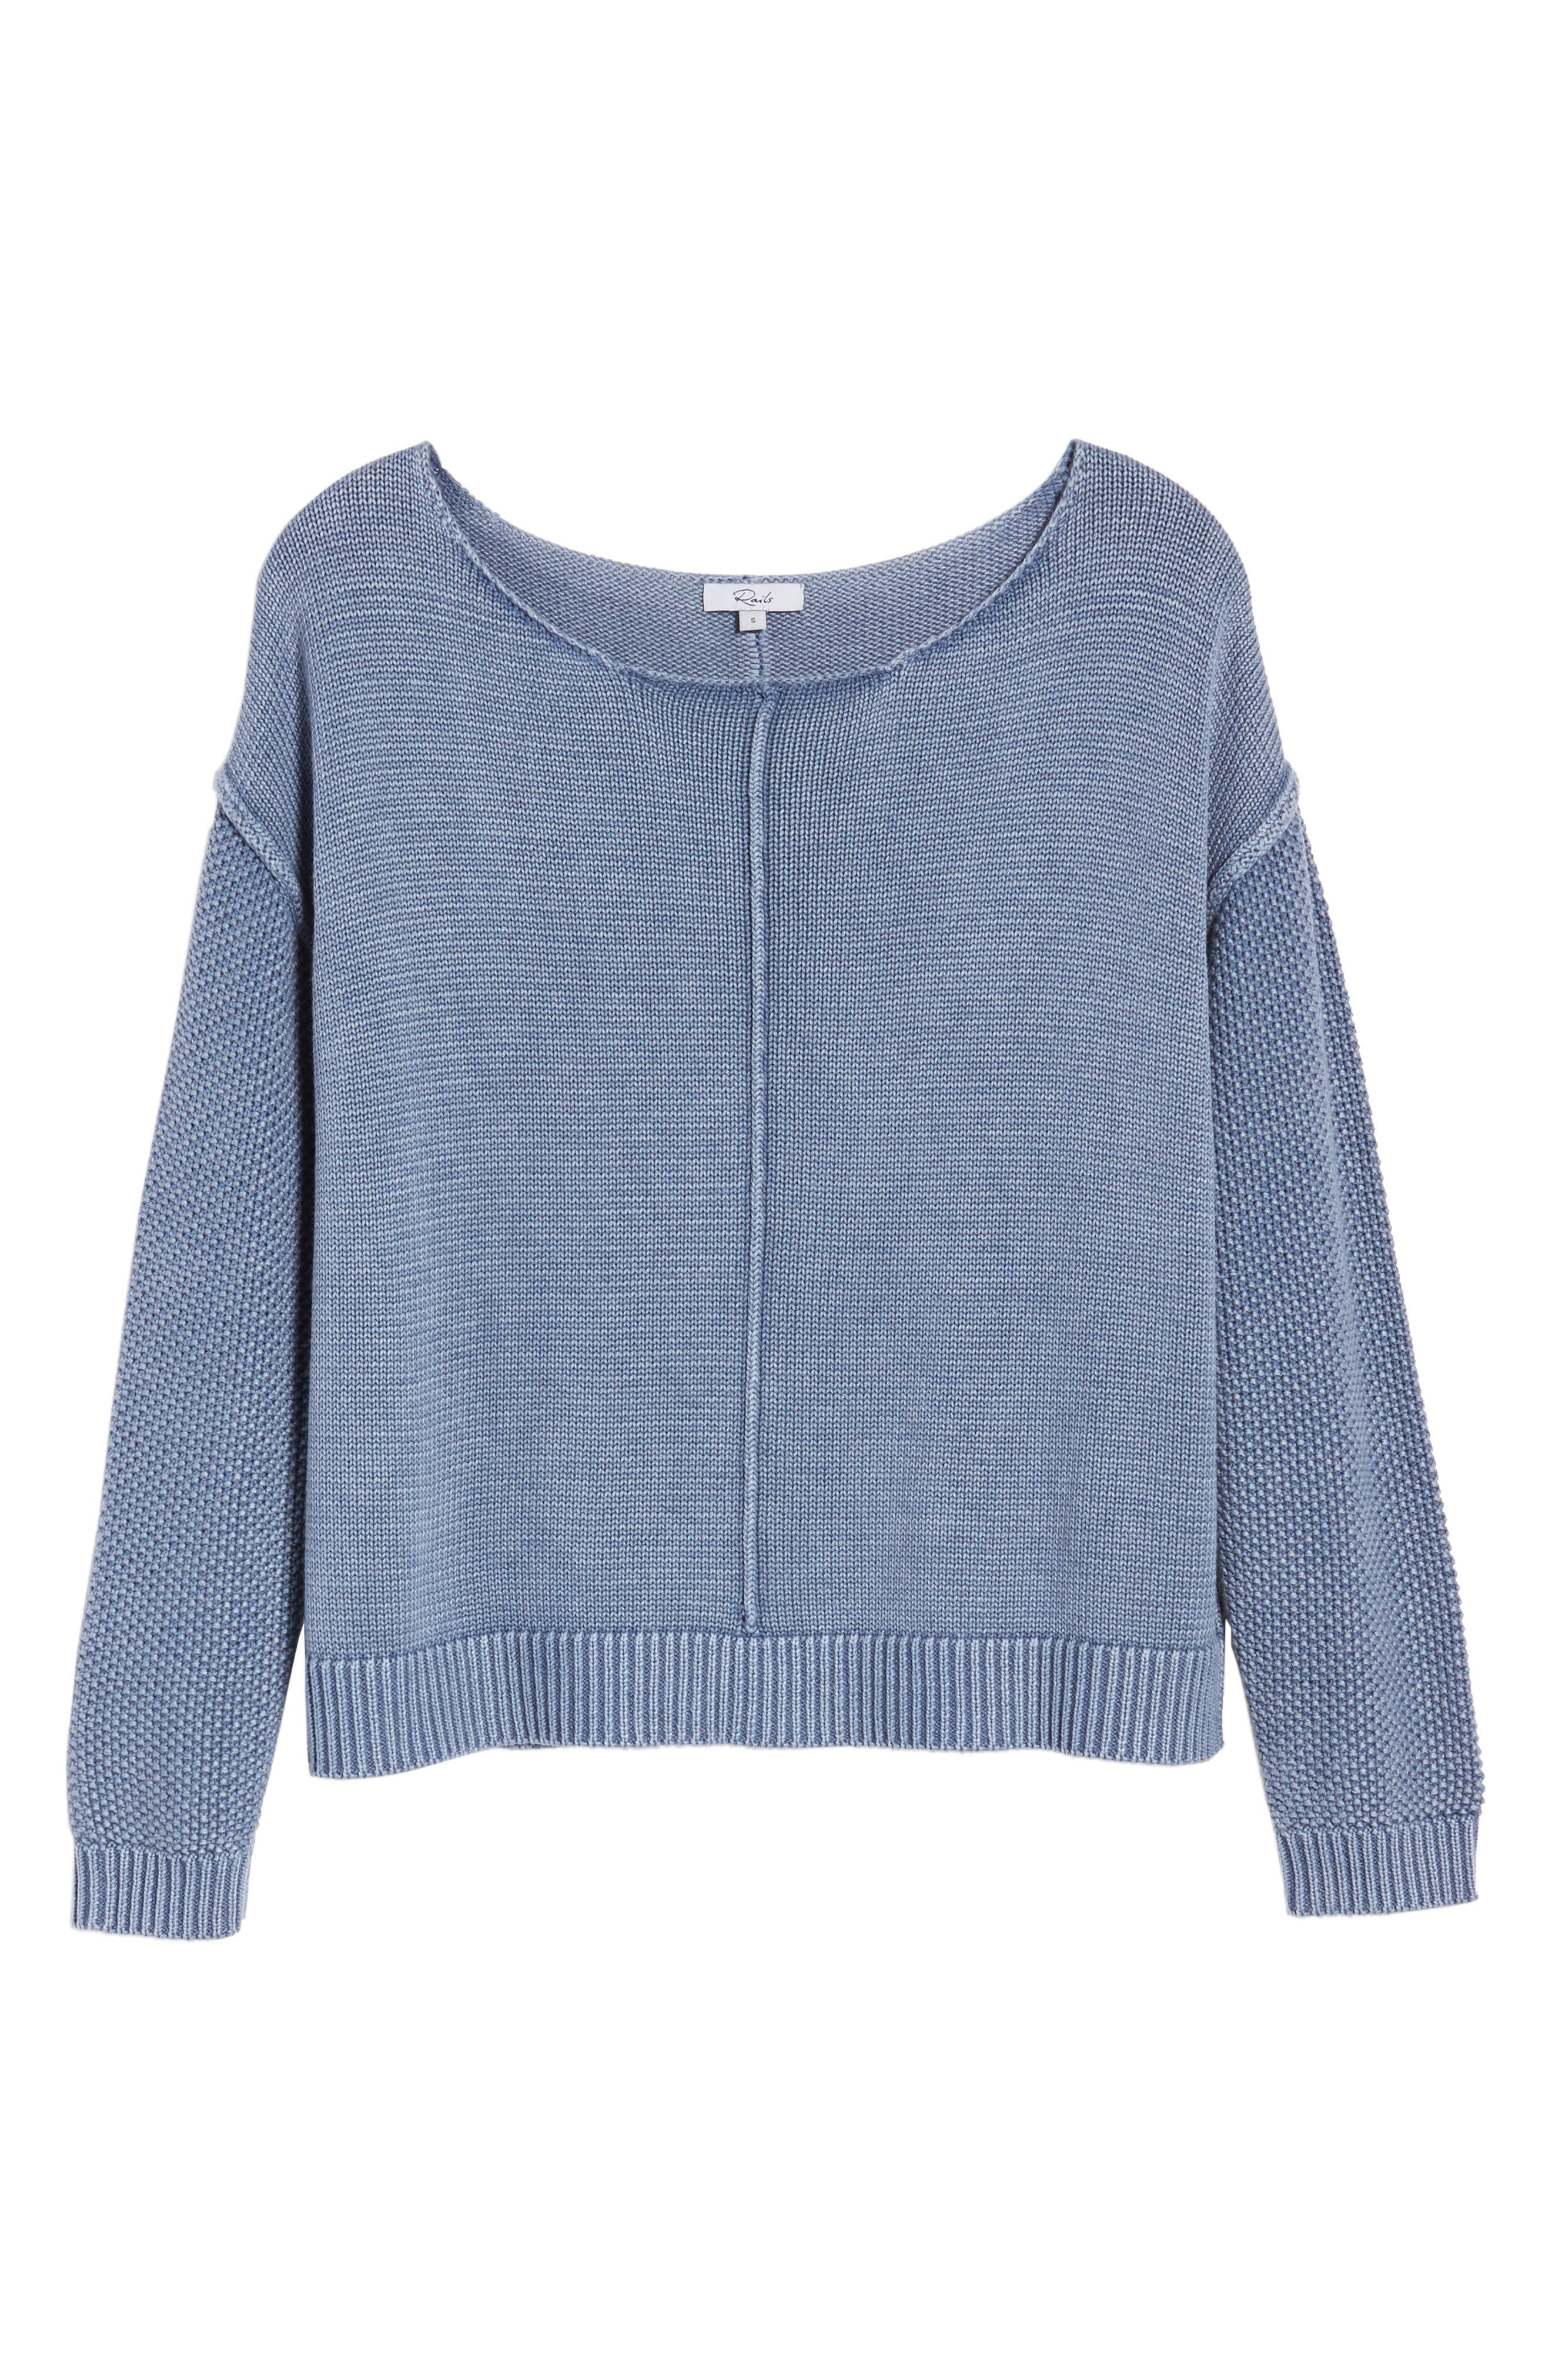 Erin Knit Sweater,                             Alternate thumbnail 7, color,                             410